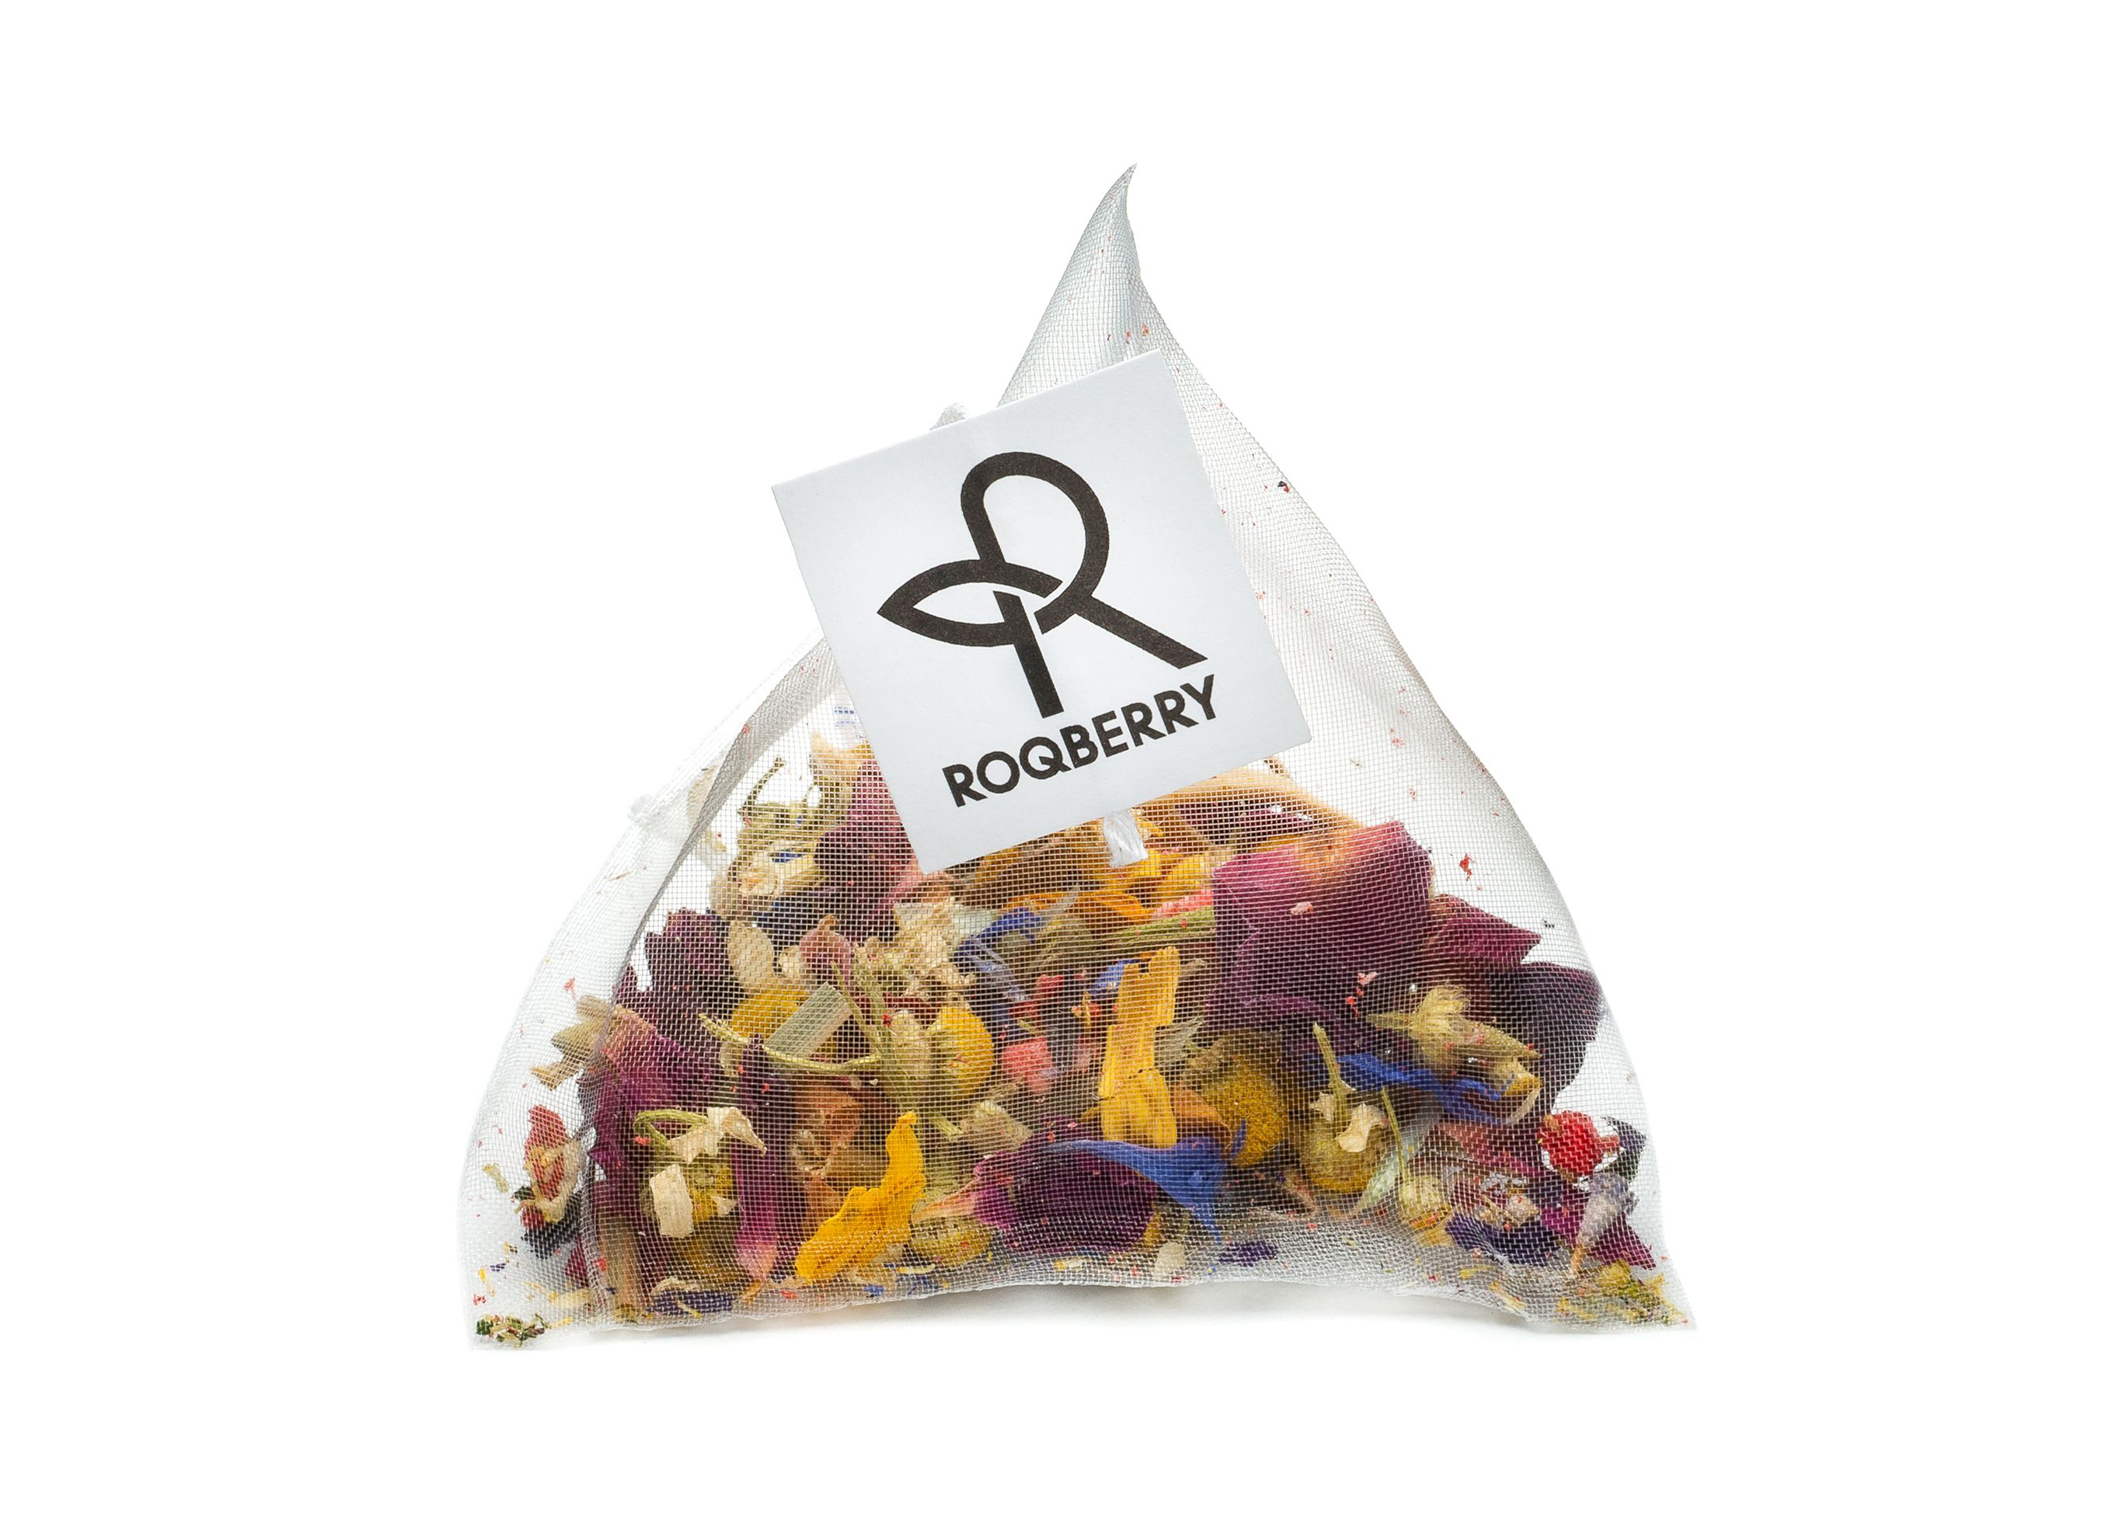 Bag of Roqberry loose tea